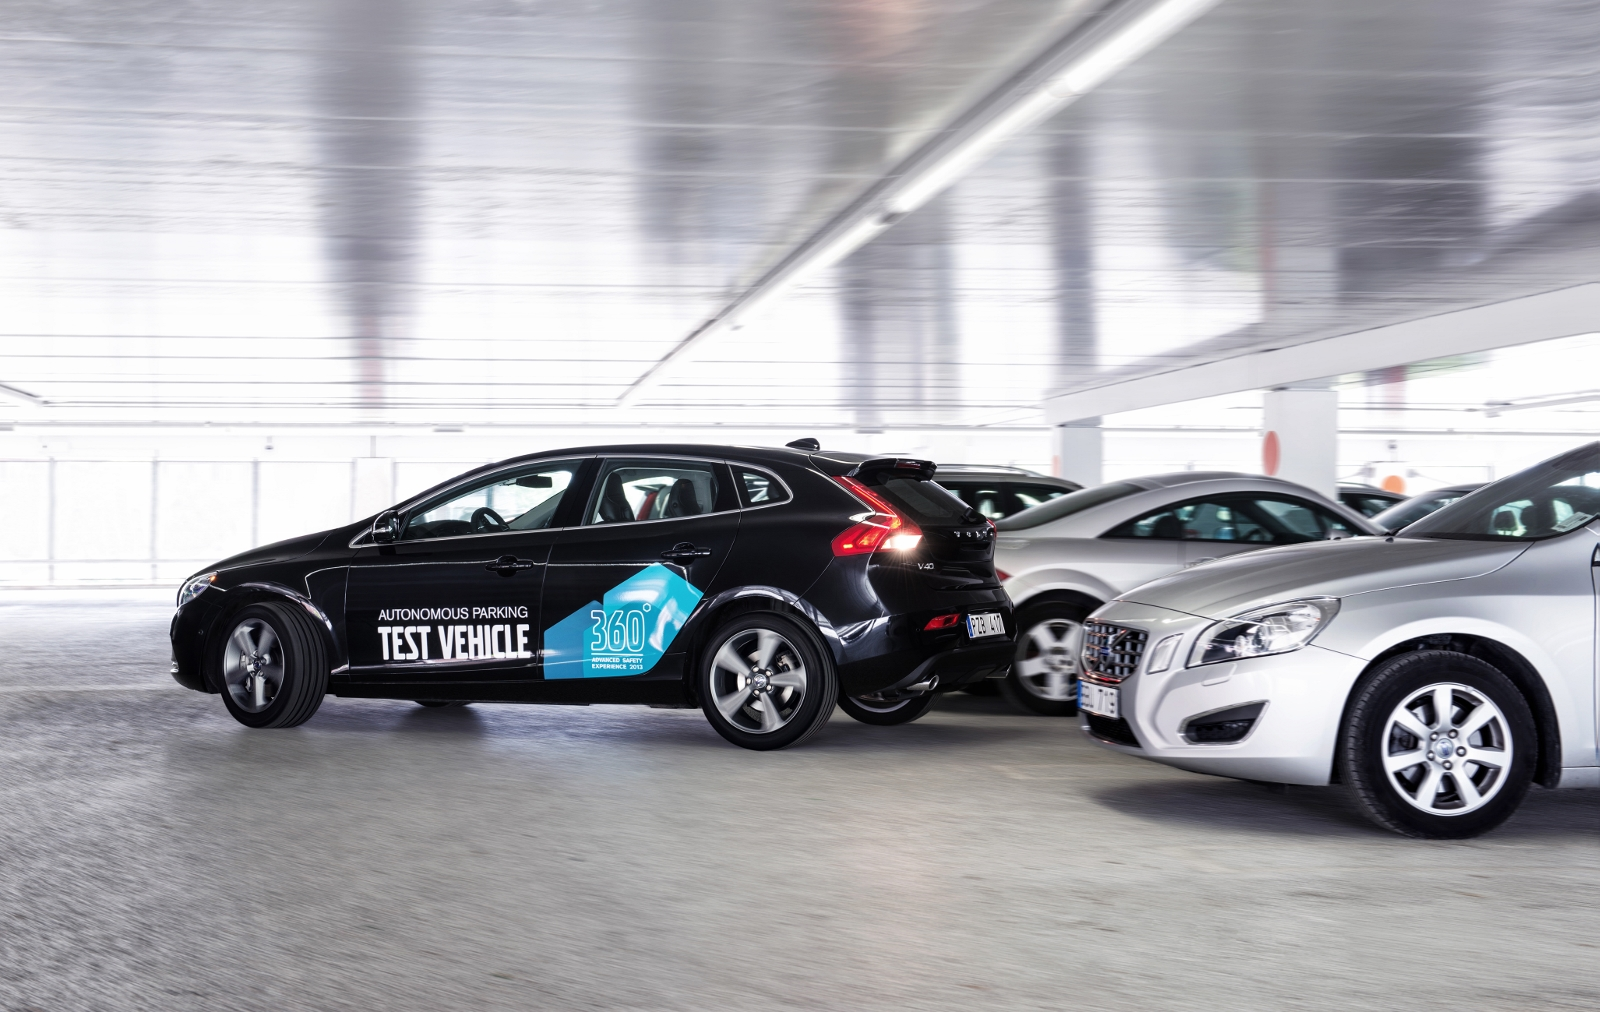 Self-parking cars to help with tighter parking spaces